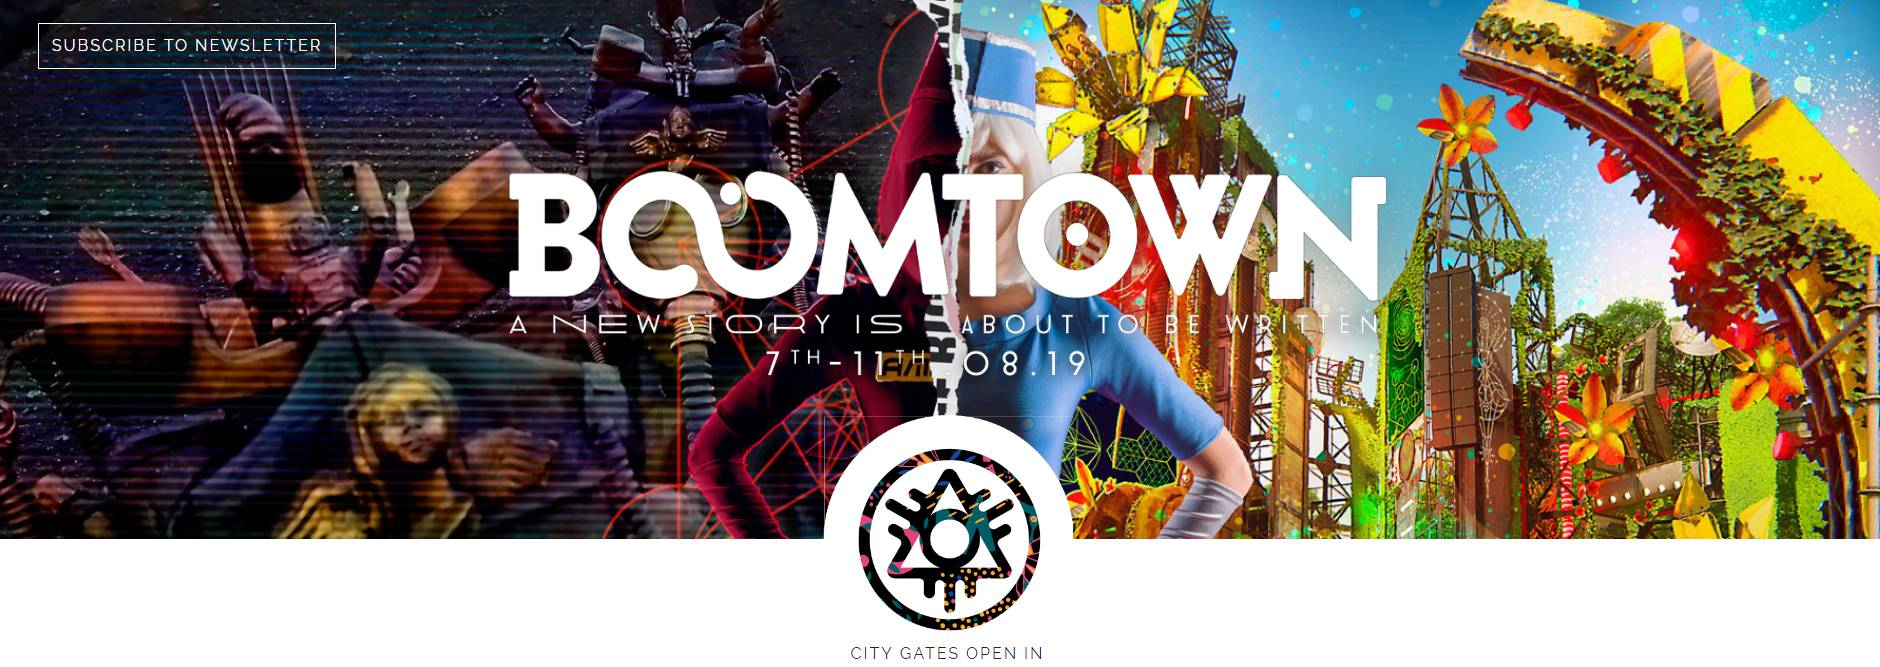 Boomtown_Chapter_11_-_A_Radical_City_-_7th-11th_August_2019_Boomtown_Chapter_11_-_A_Radical_City_-_7th-11th_August_2019_-_2019-07-16_21.02.54.jpg